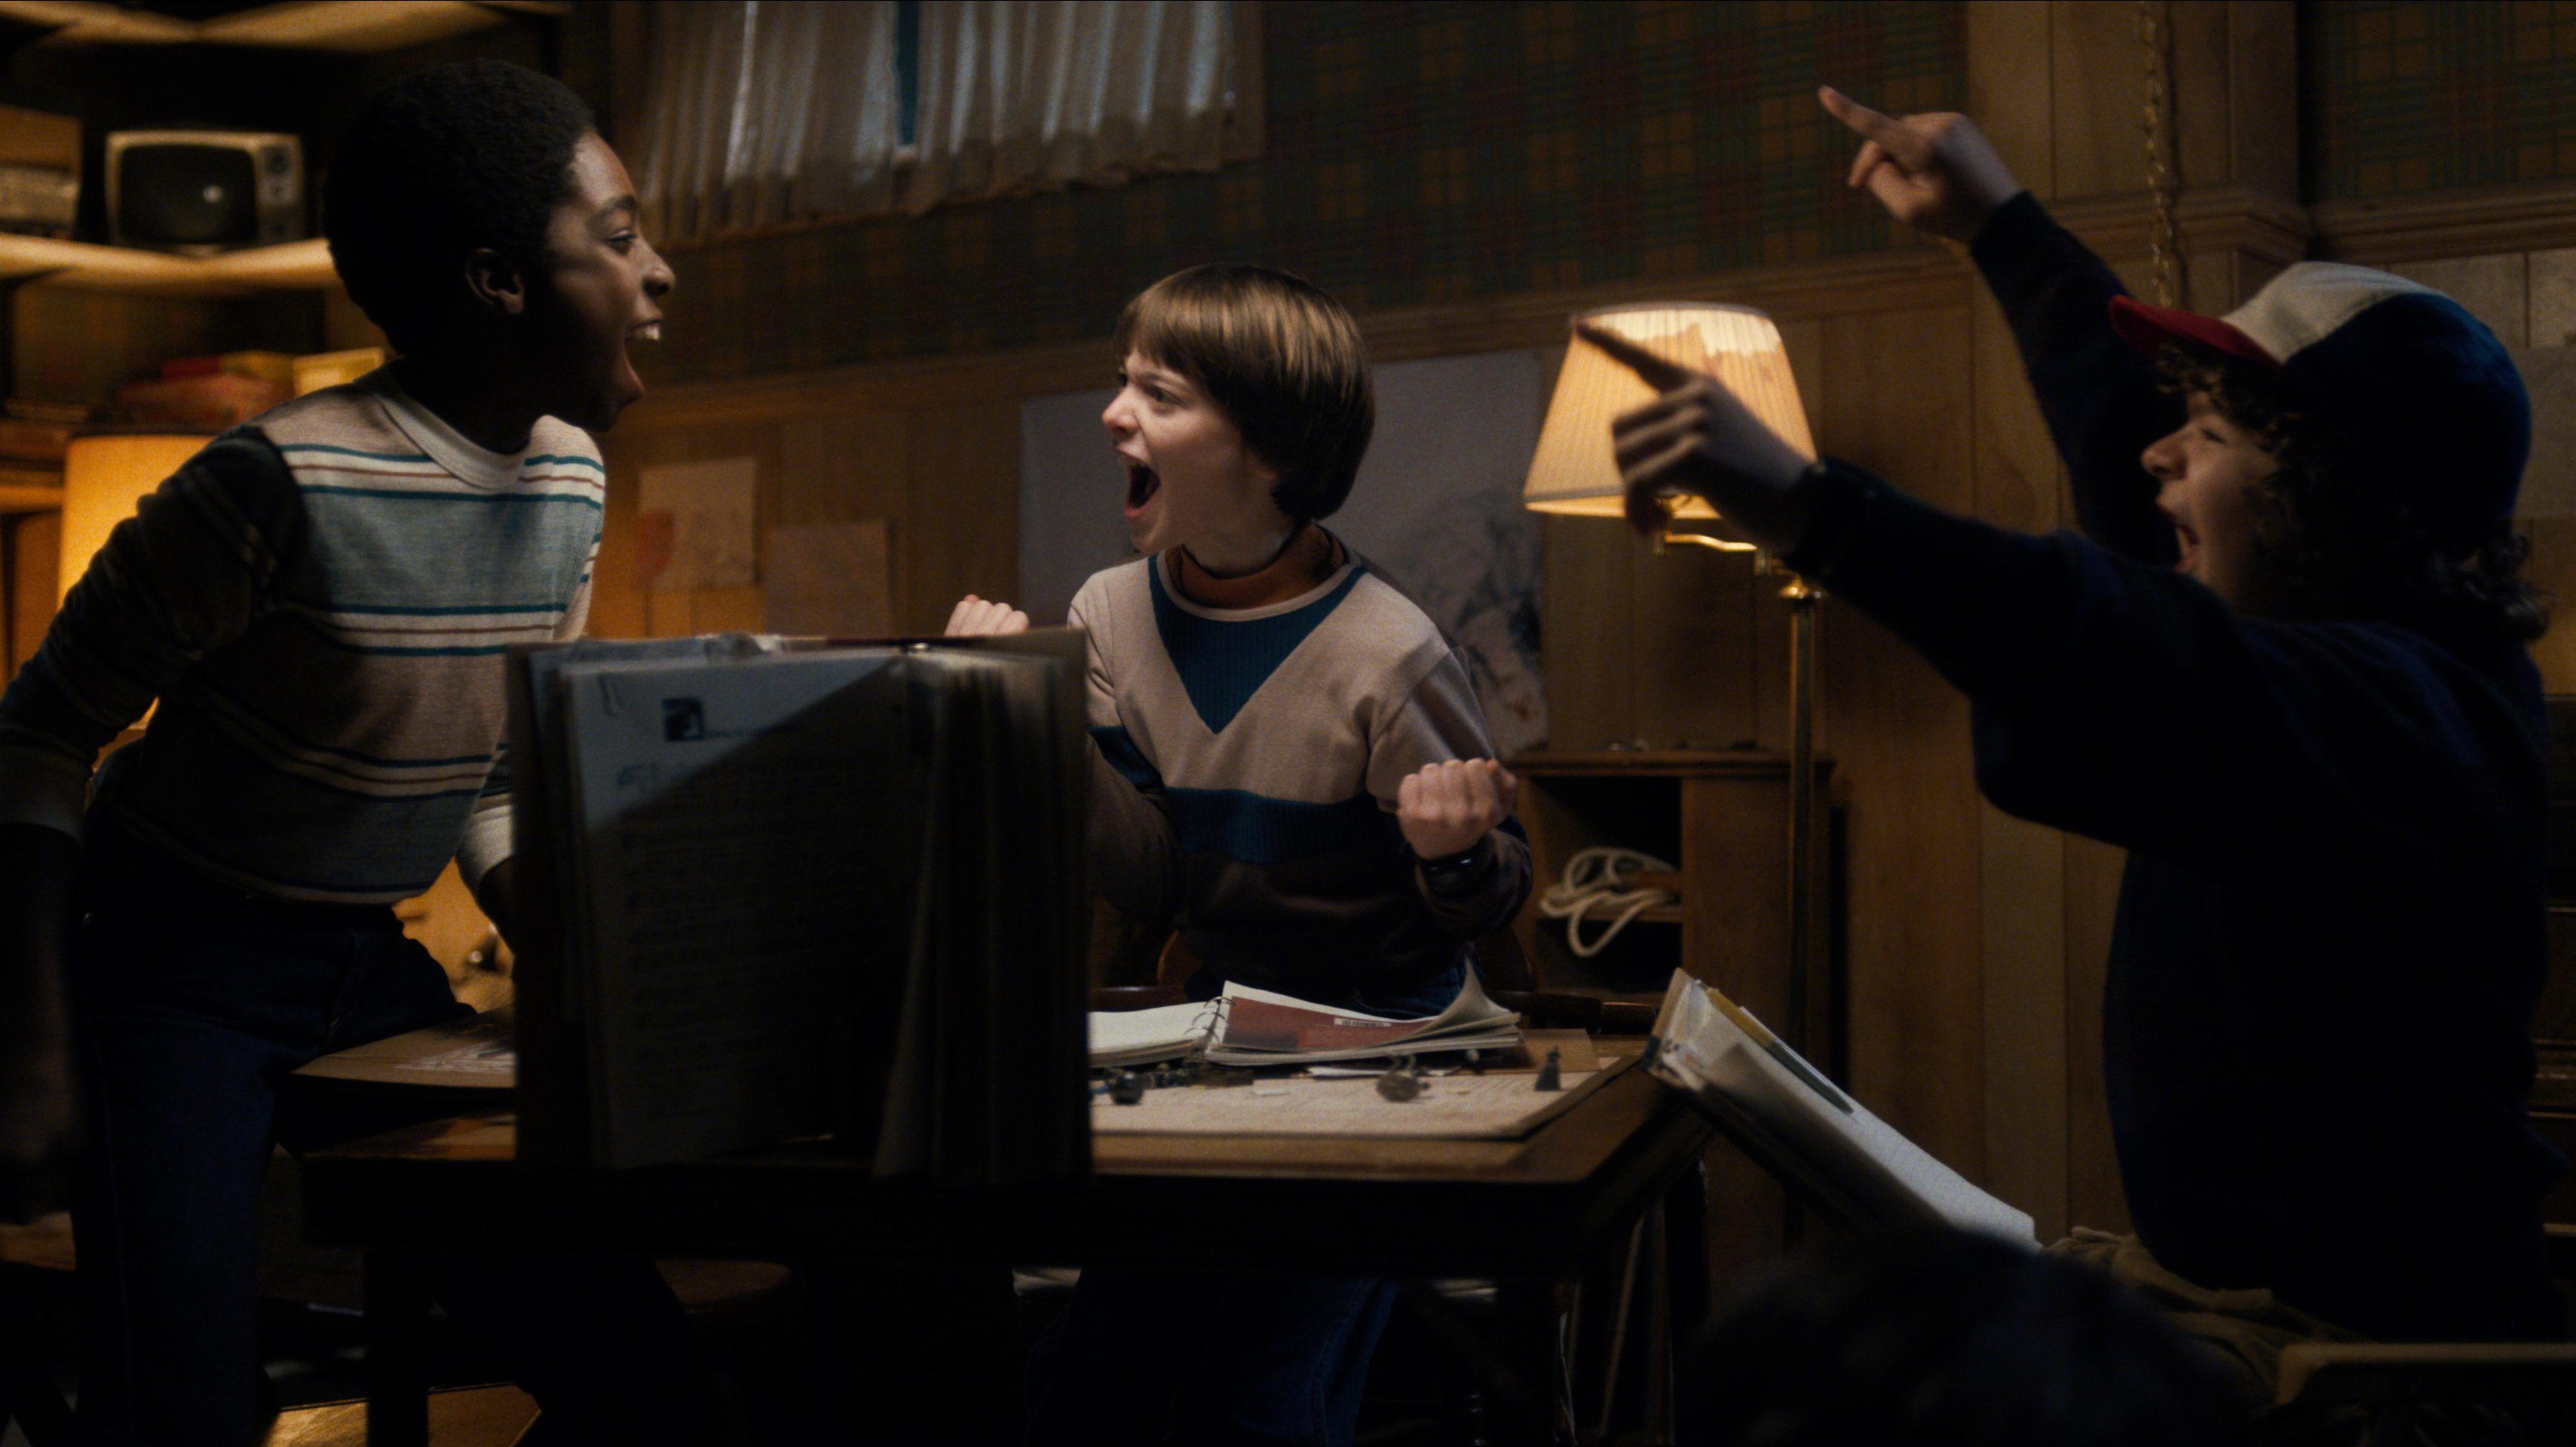 'Stranger Things' Creators Say They Have Proof They Didn't Steal The Idea